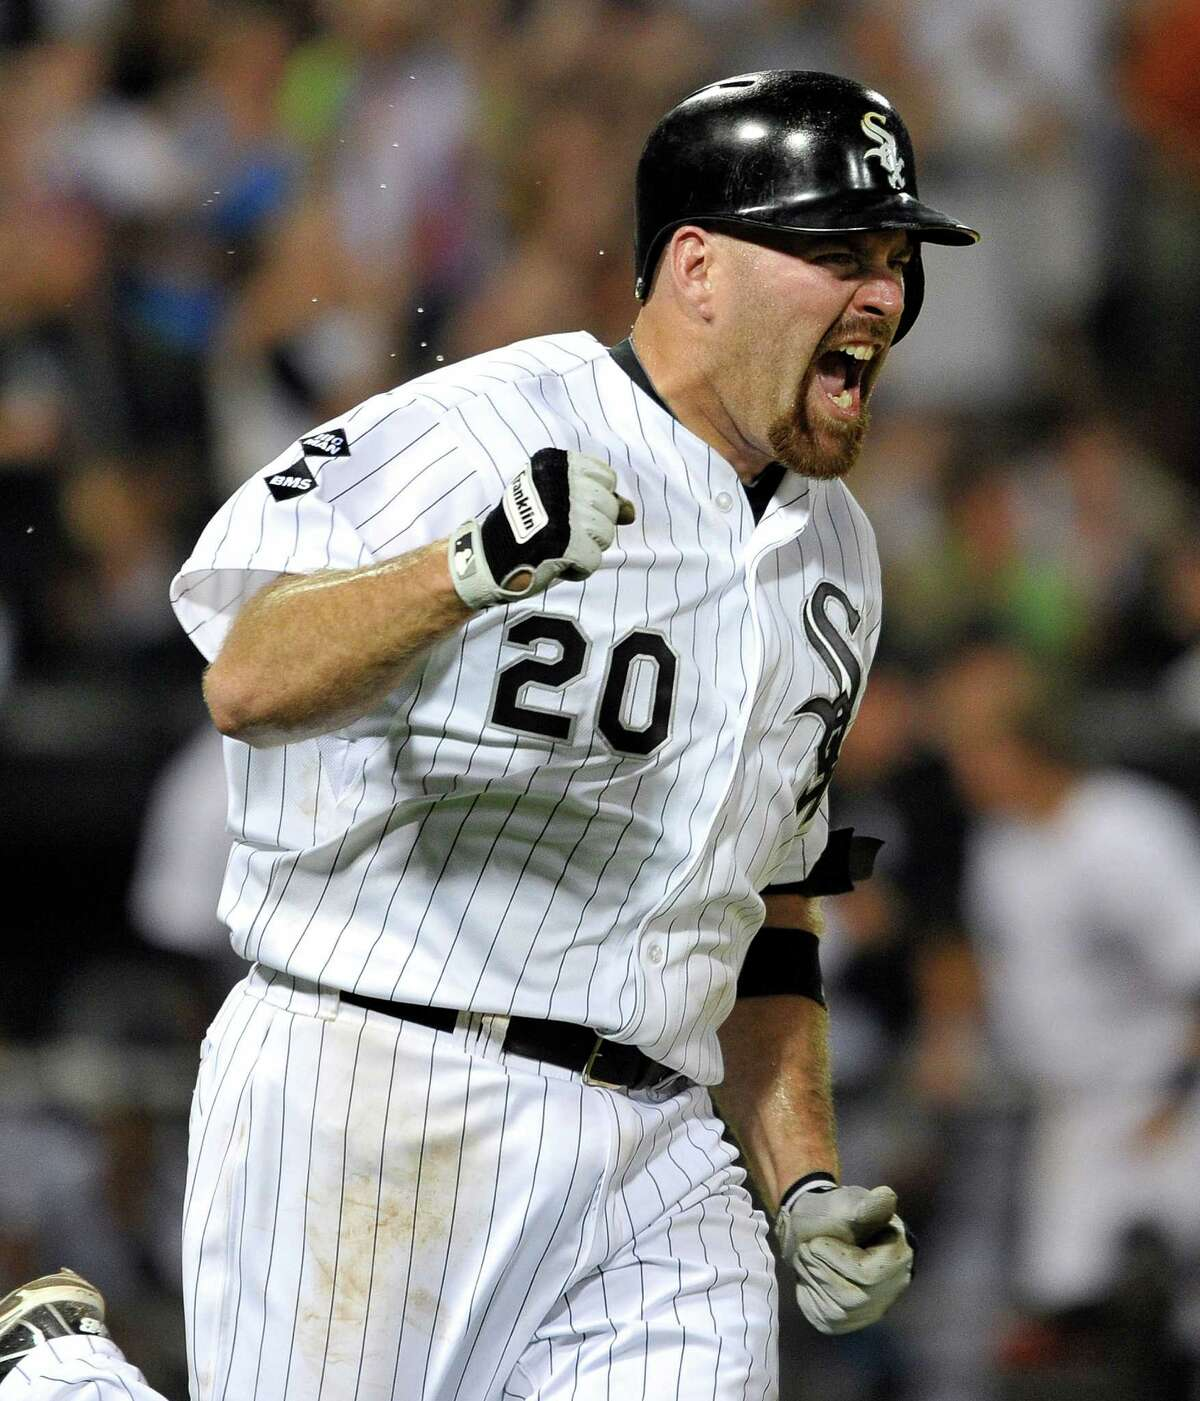 Kevin Youkilis' RBI single in the 10th lifted the White Sox past the Rangers.